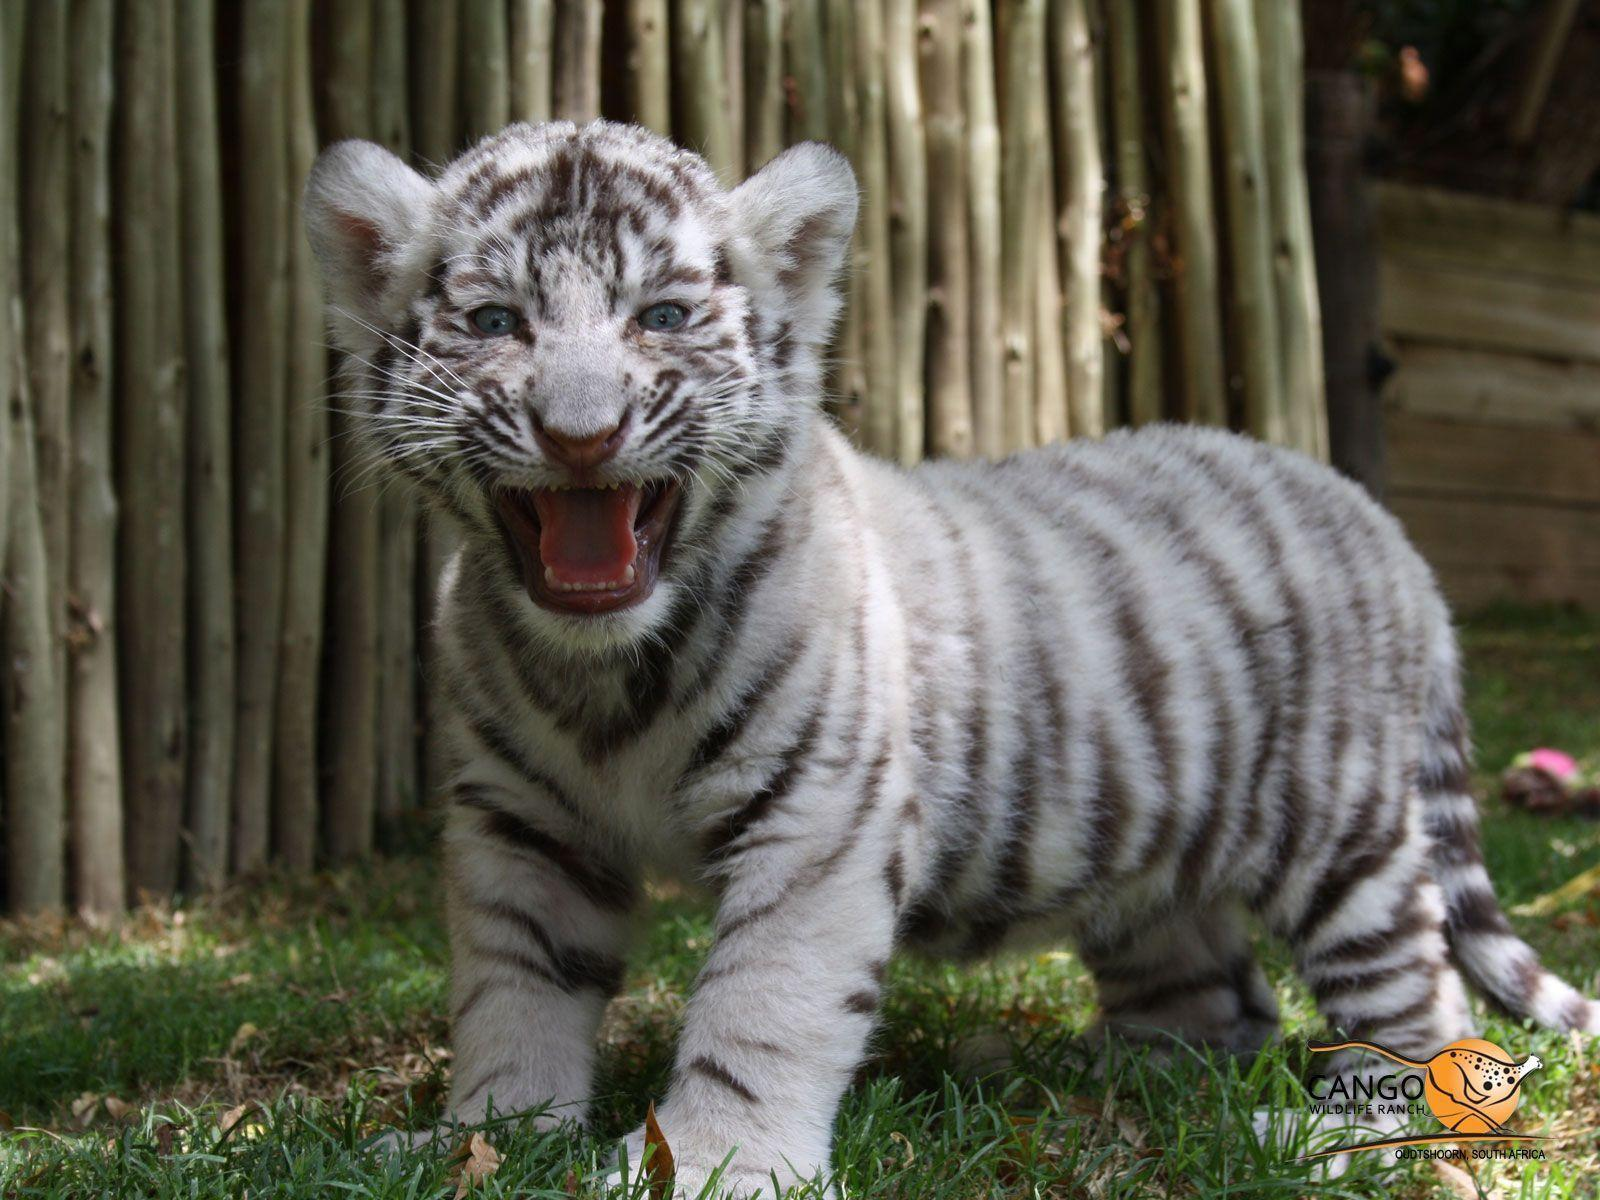 Cute Tiger Cubs Hd Wallpapers White Tiger Cub Wallpapers Wallpaper Cave